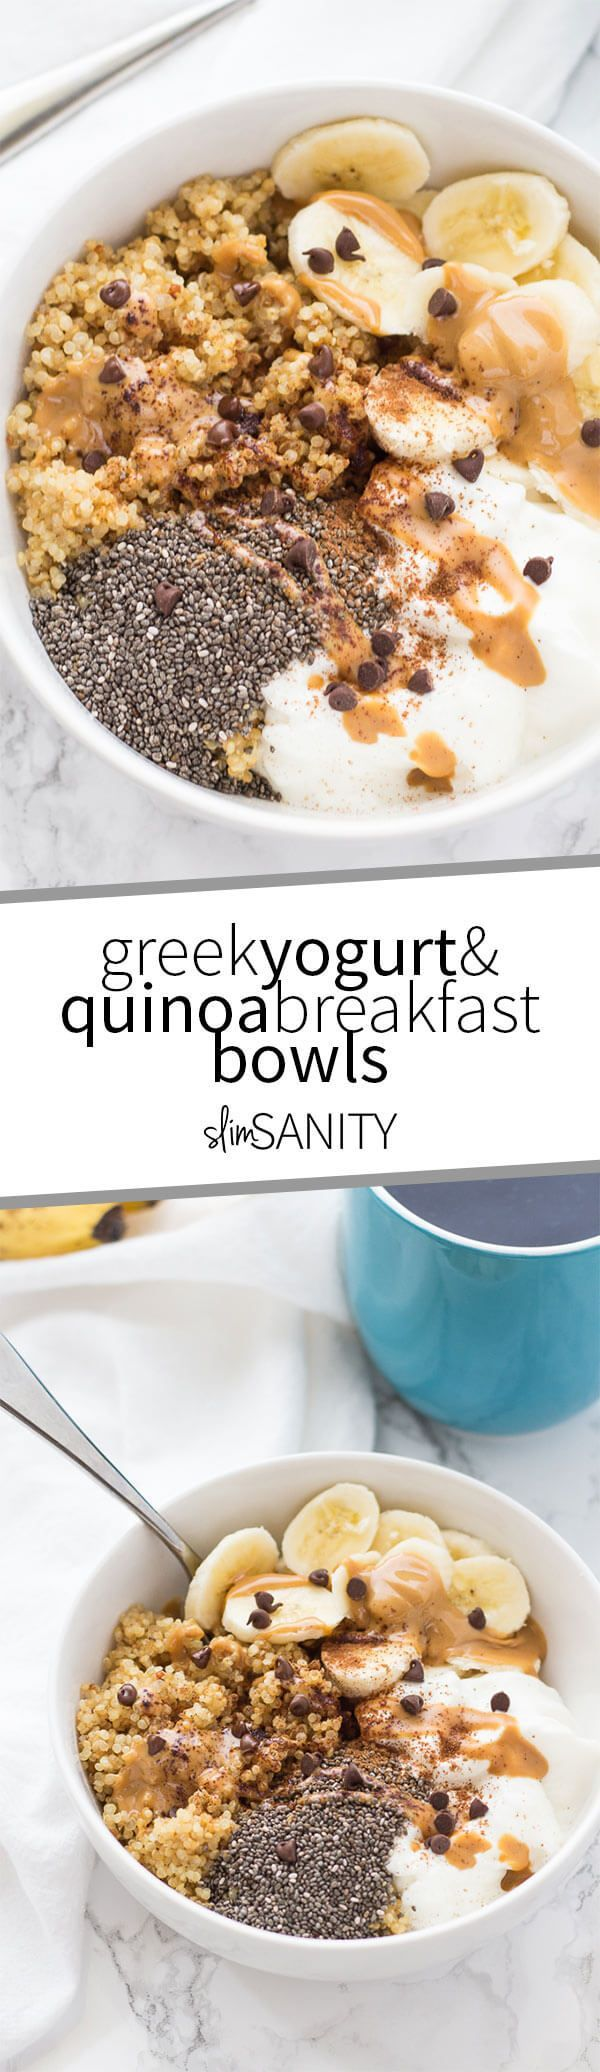 Greek yogurt and quinoa breakfast bowls are a simple and delicious way to eat a healthy breakfast that is high in protein! | http://slimsanity.com